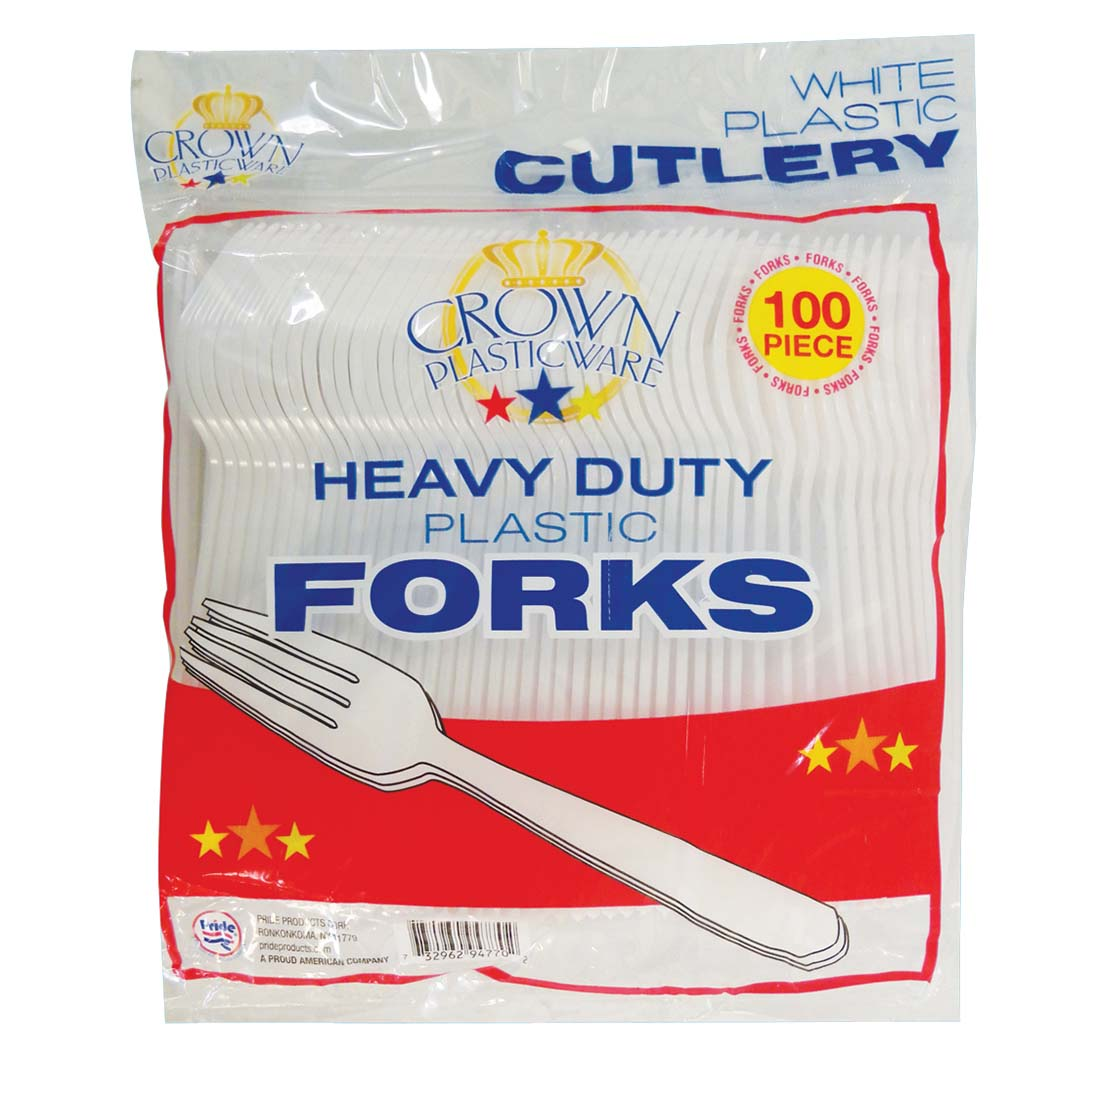 View PLASTIC CUTLERY 100 COUNT FORK